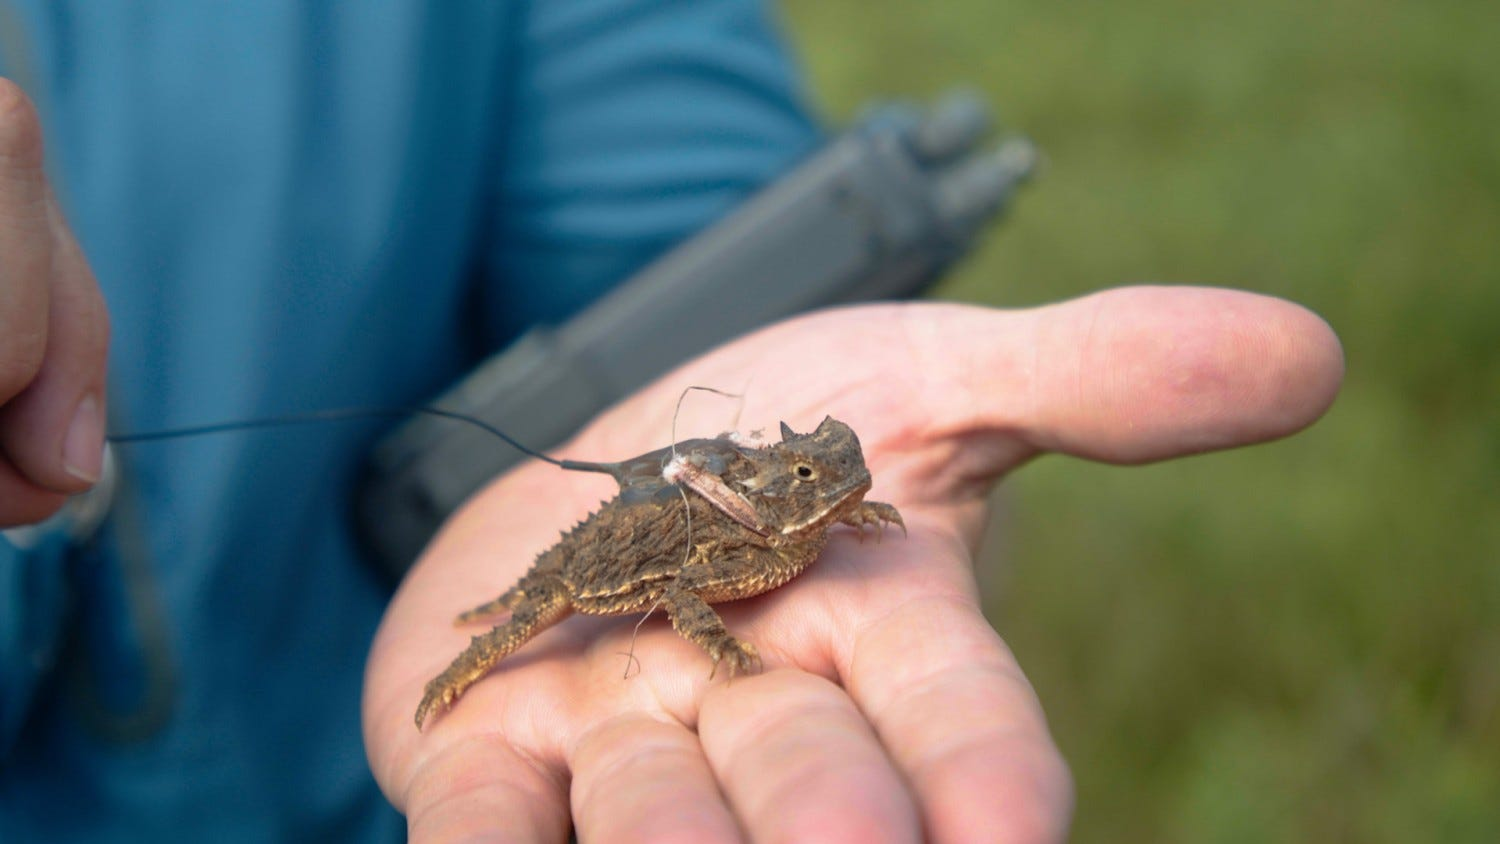 Horny toads are disappearing. Can they be saved? 2